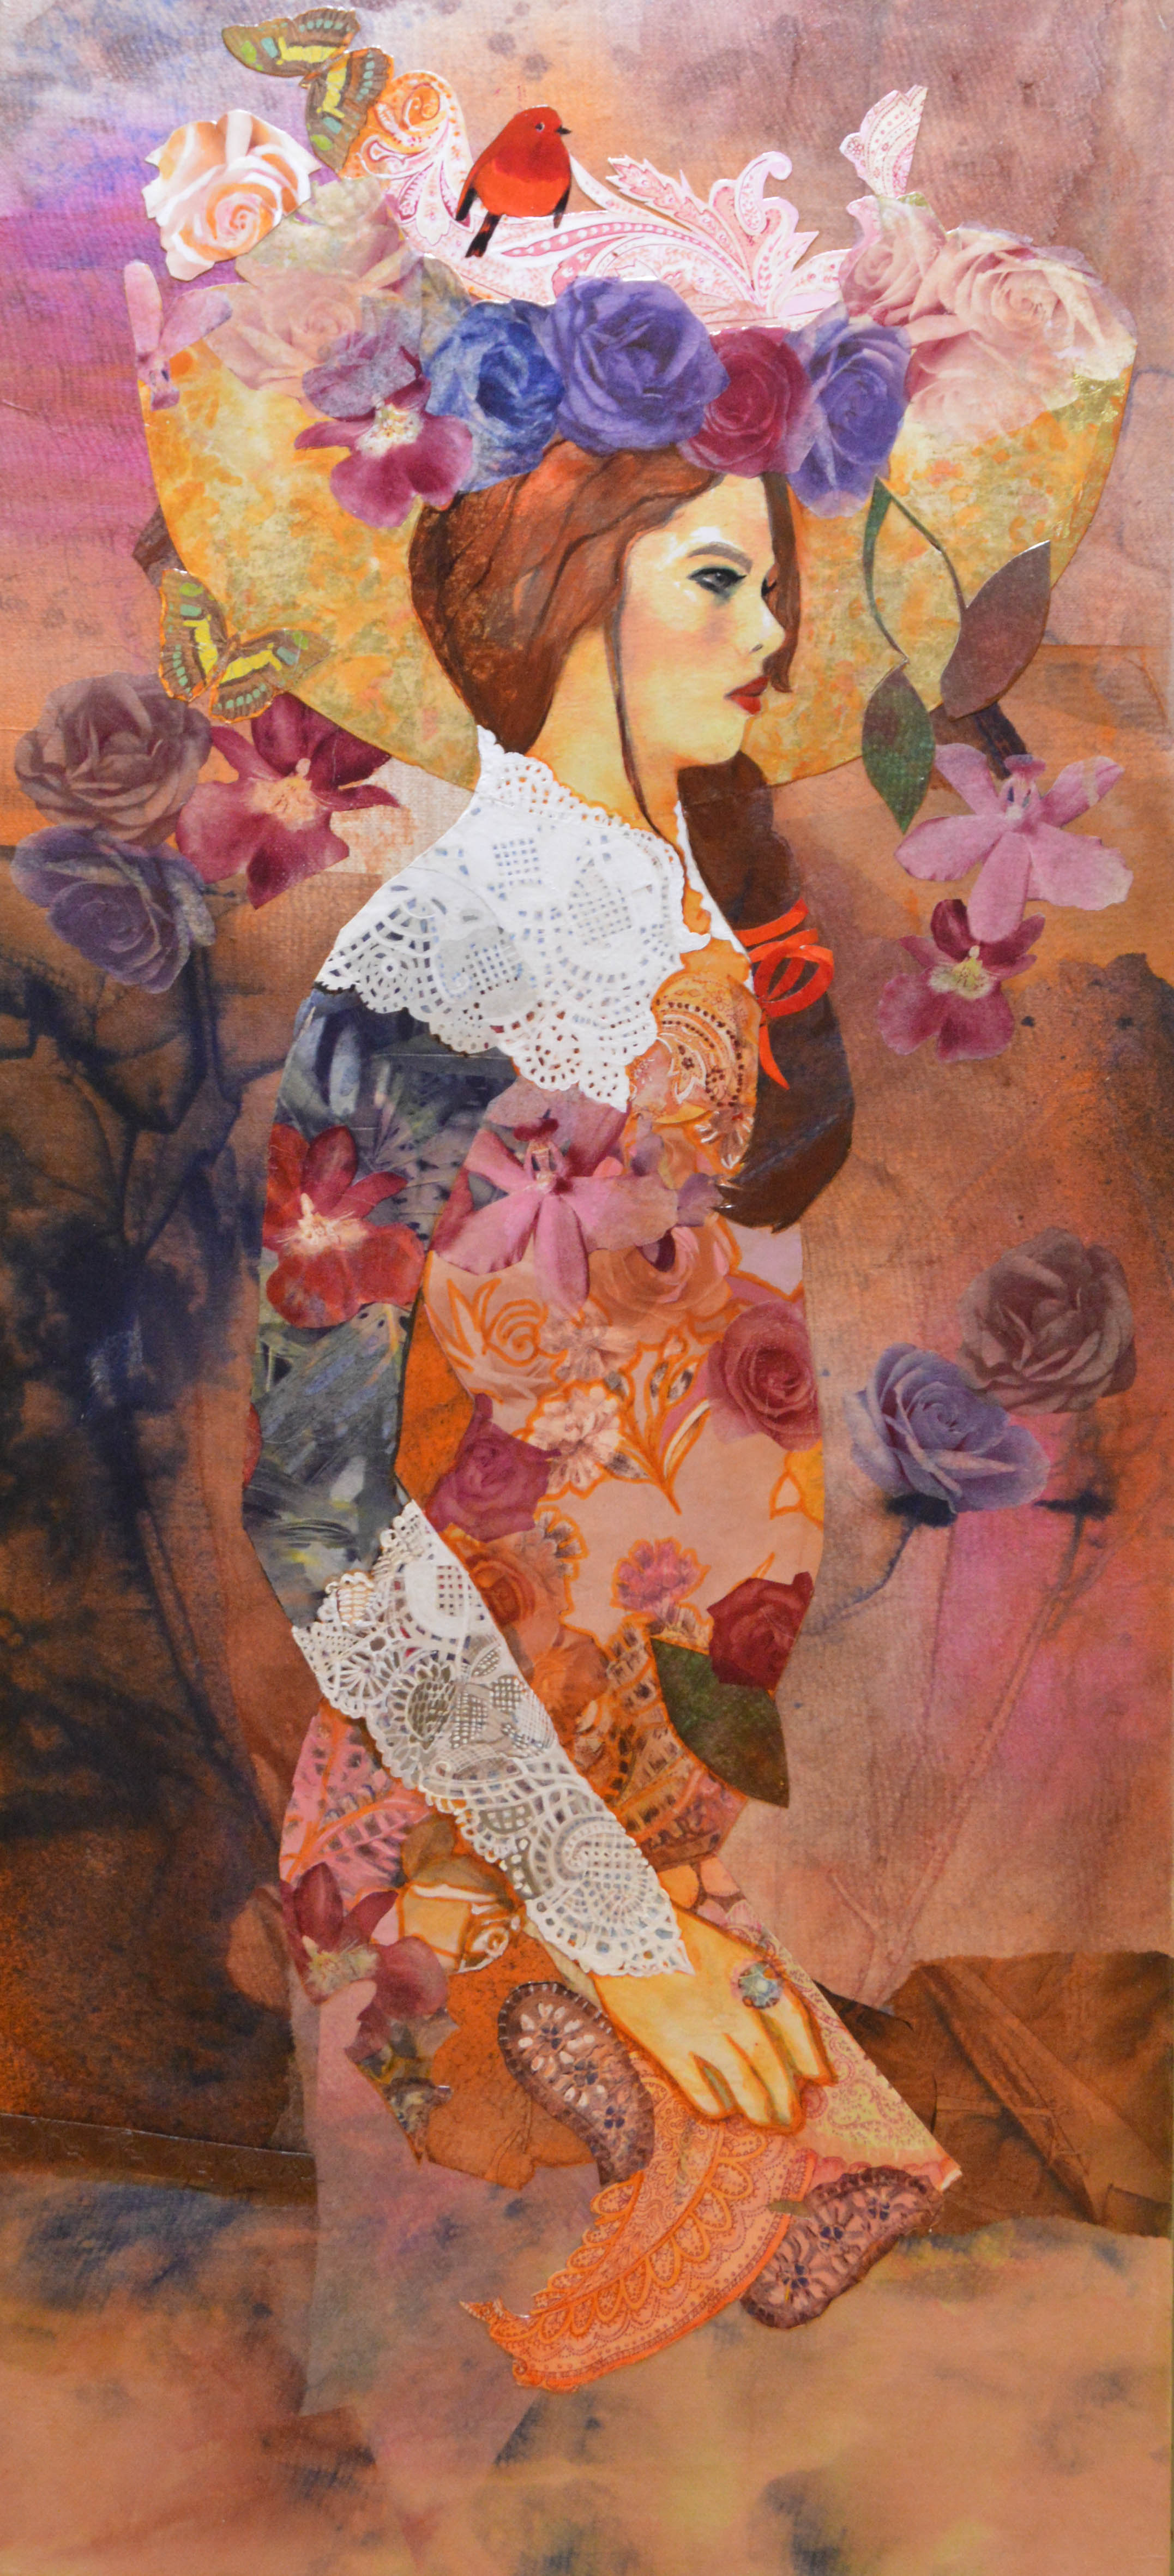 Collage by Cheryl Curnick